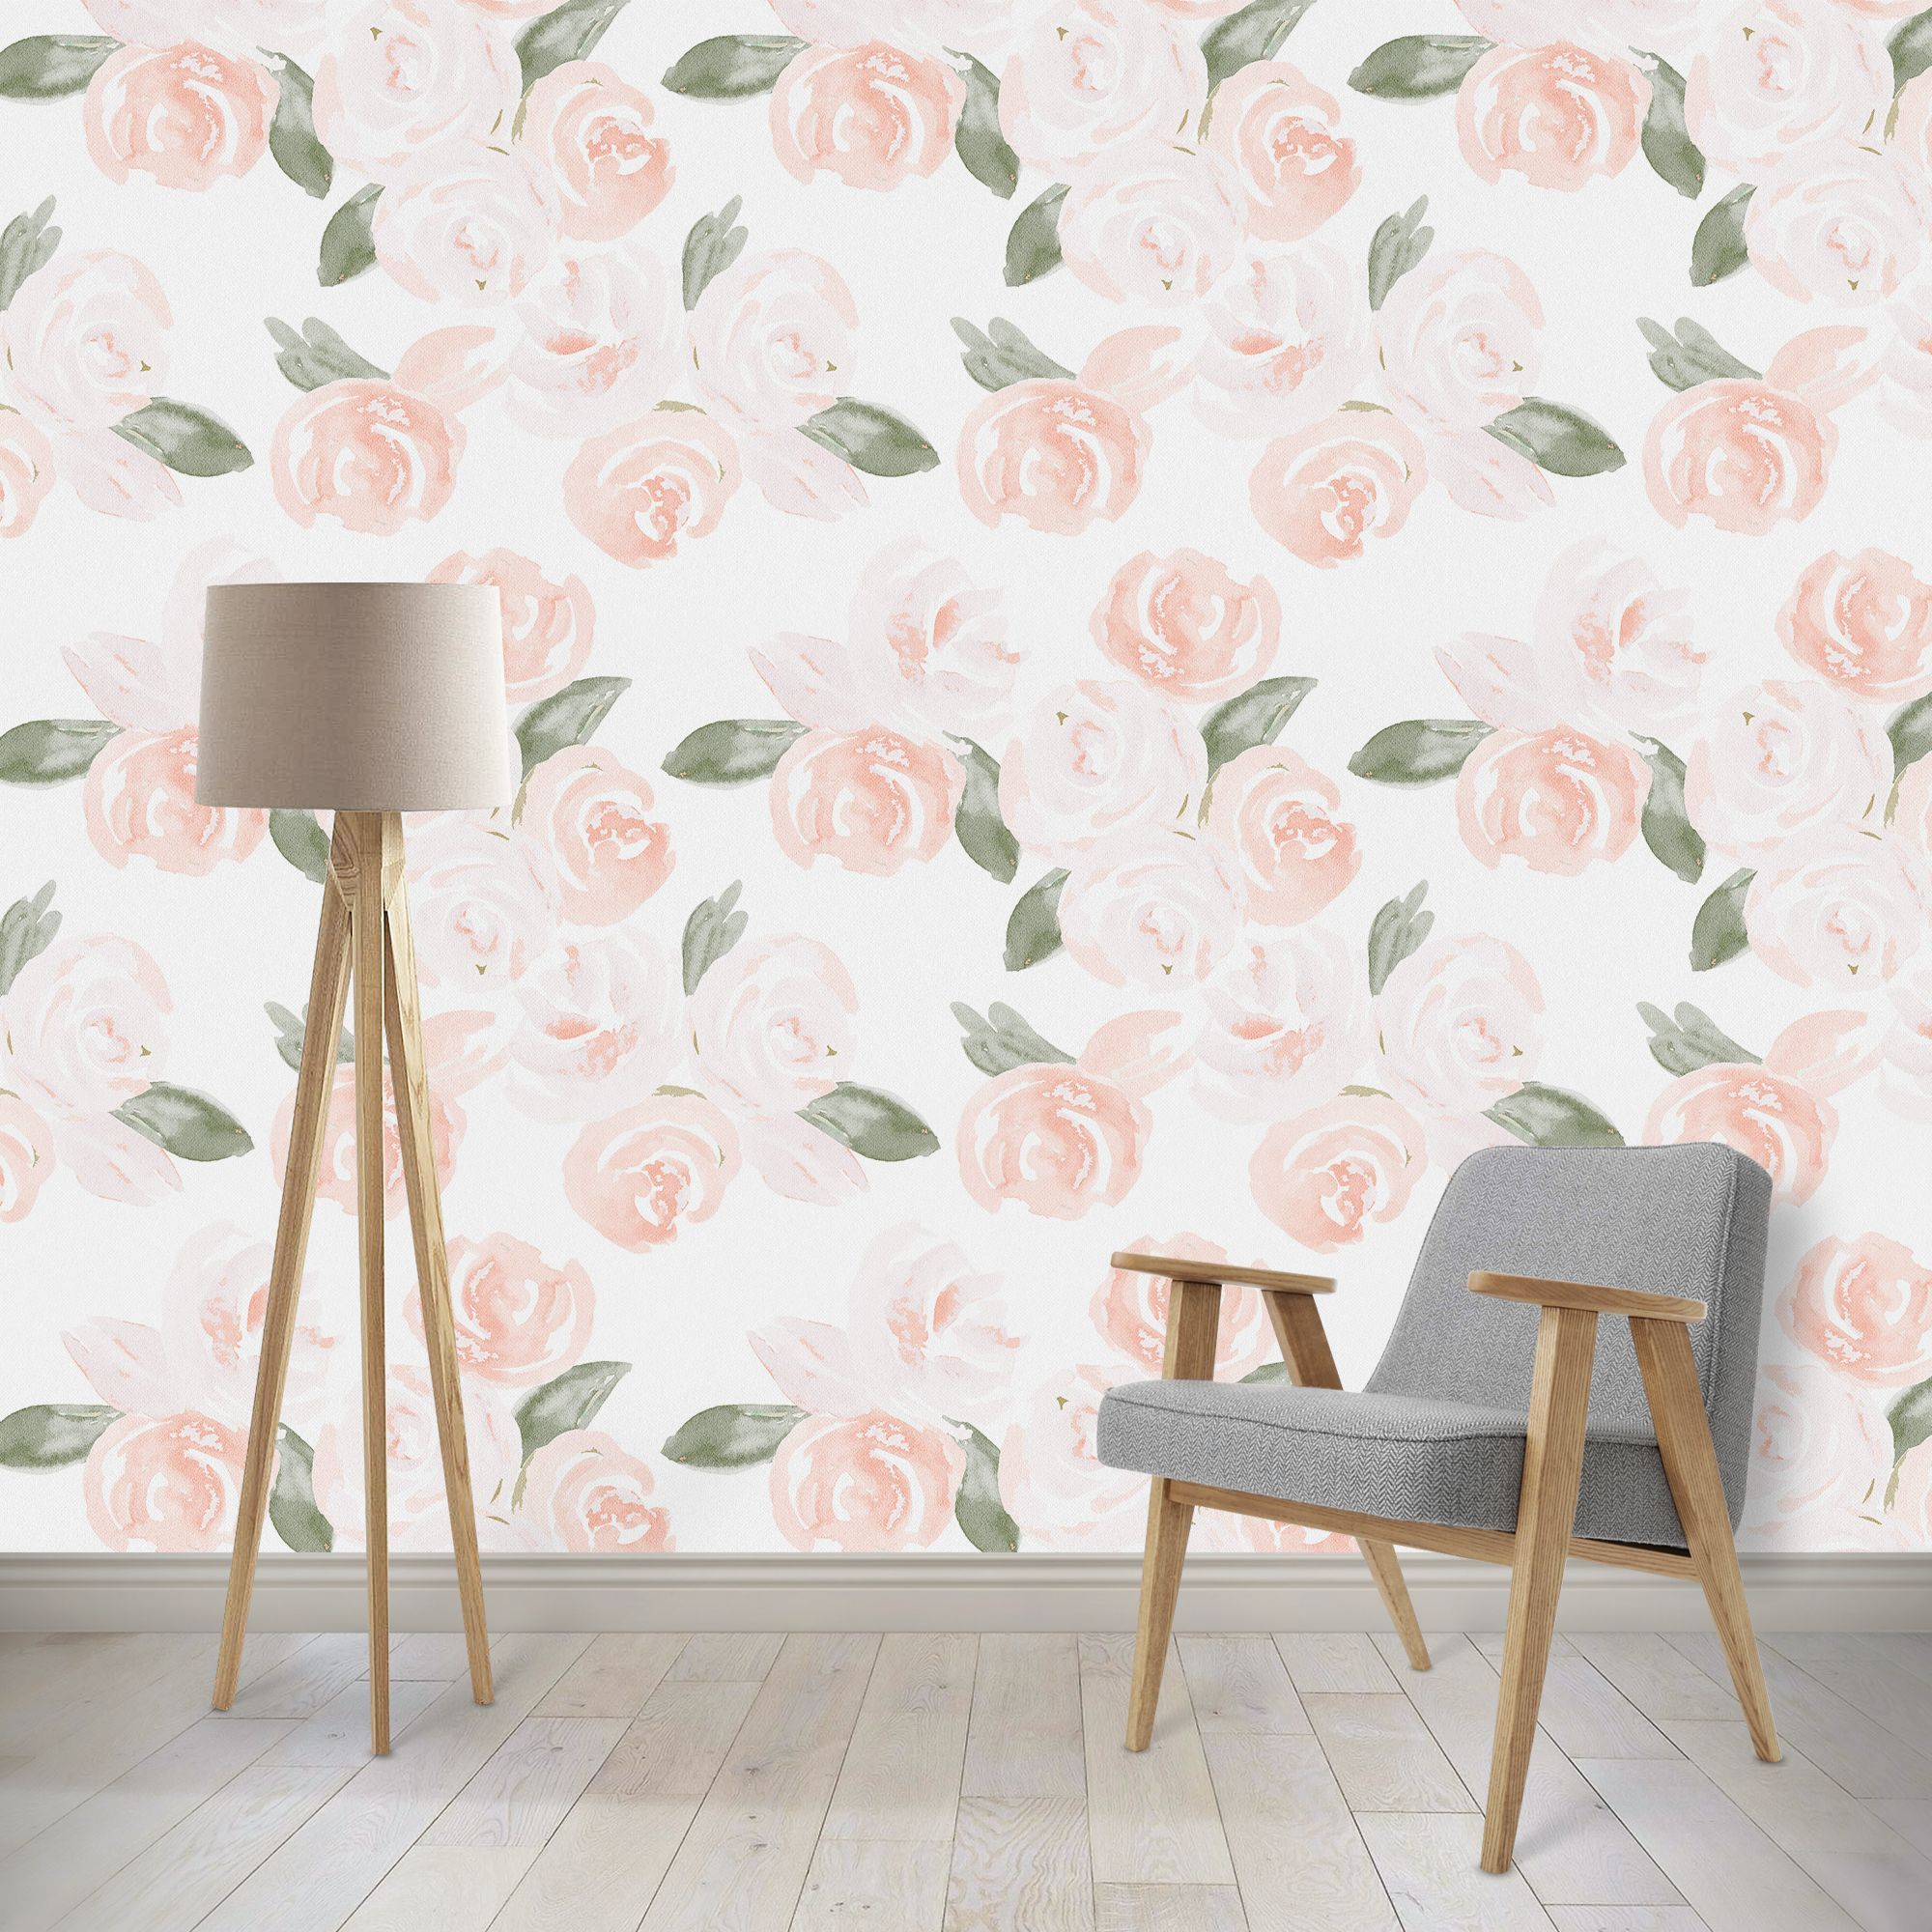 Watercolor Boho Floral Removable Wallpaper A Z Interiors